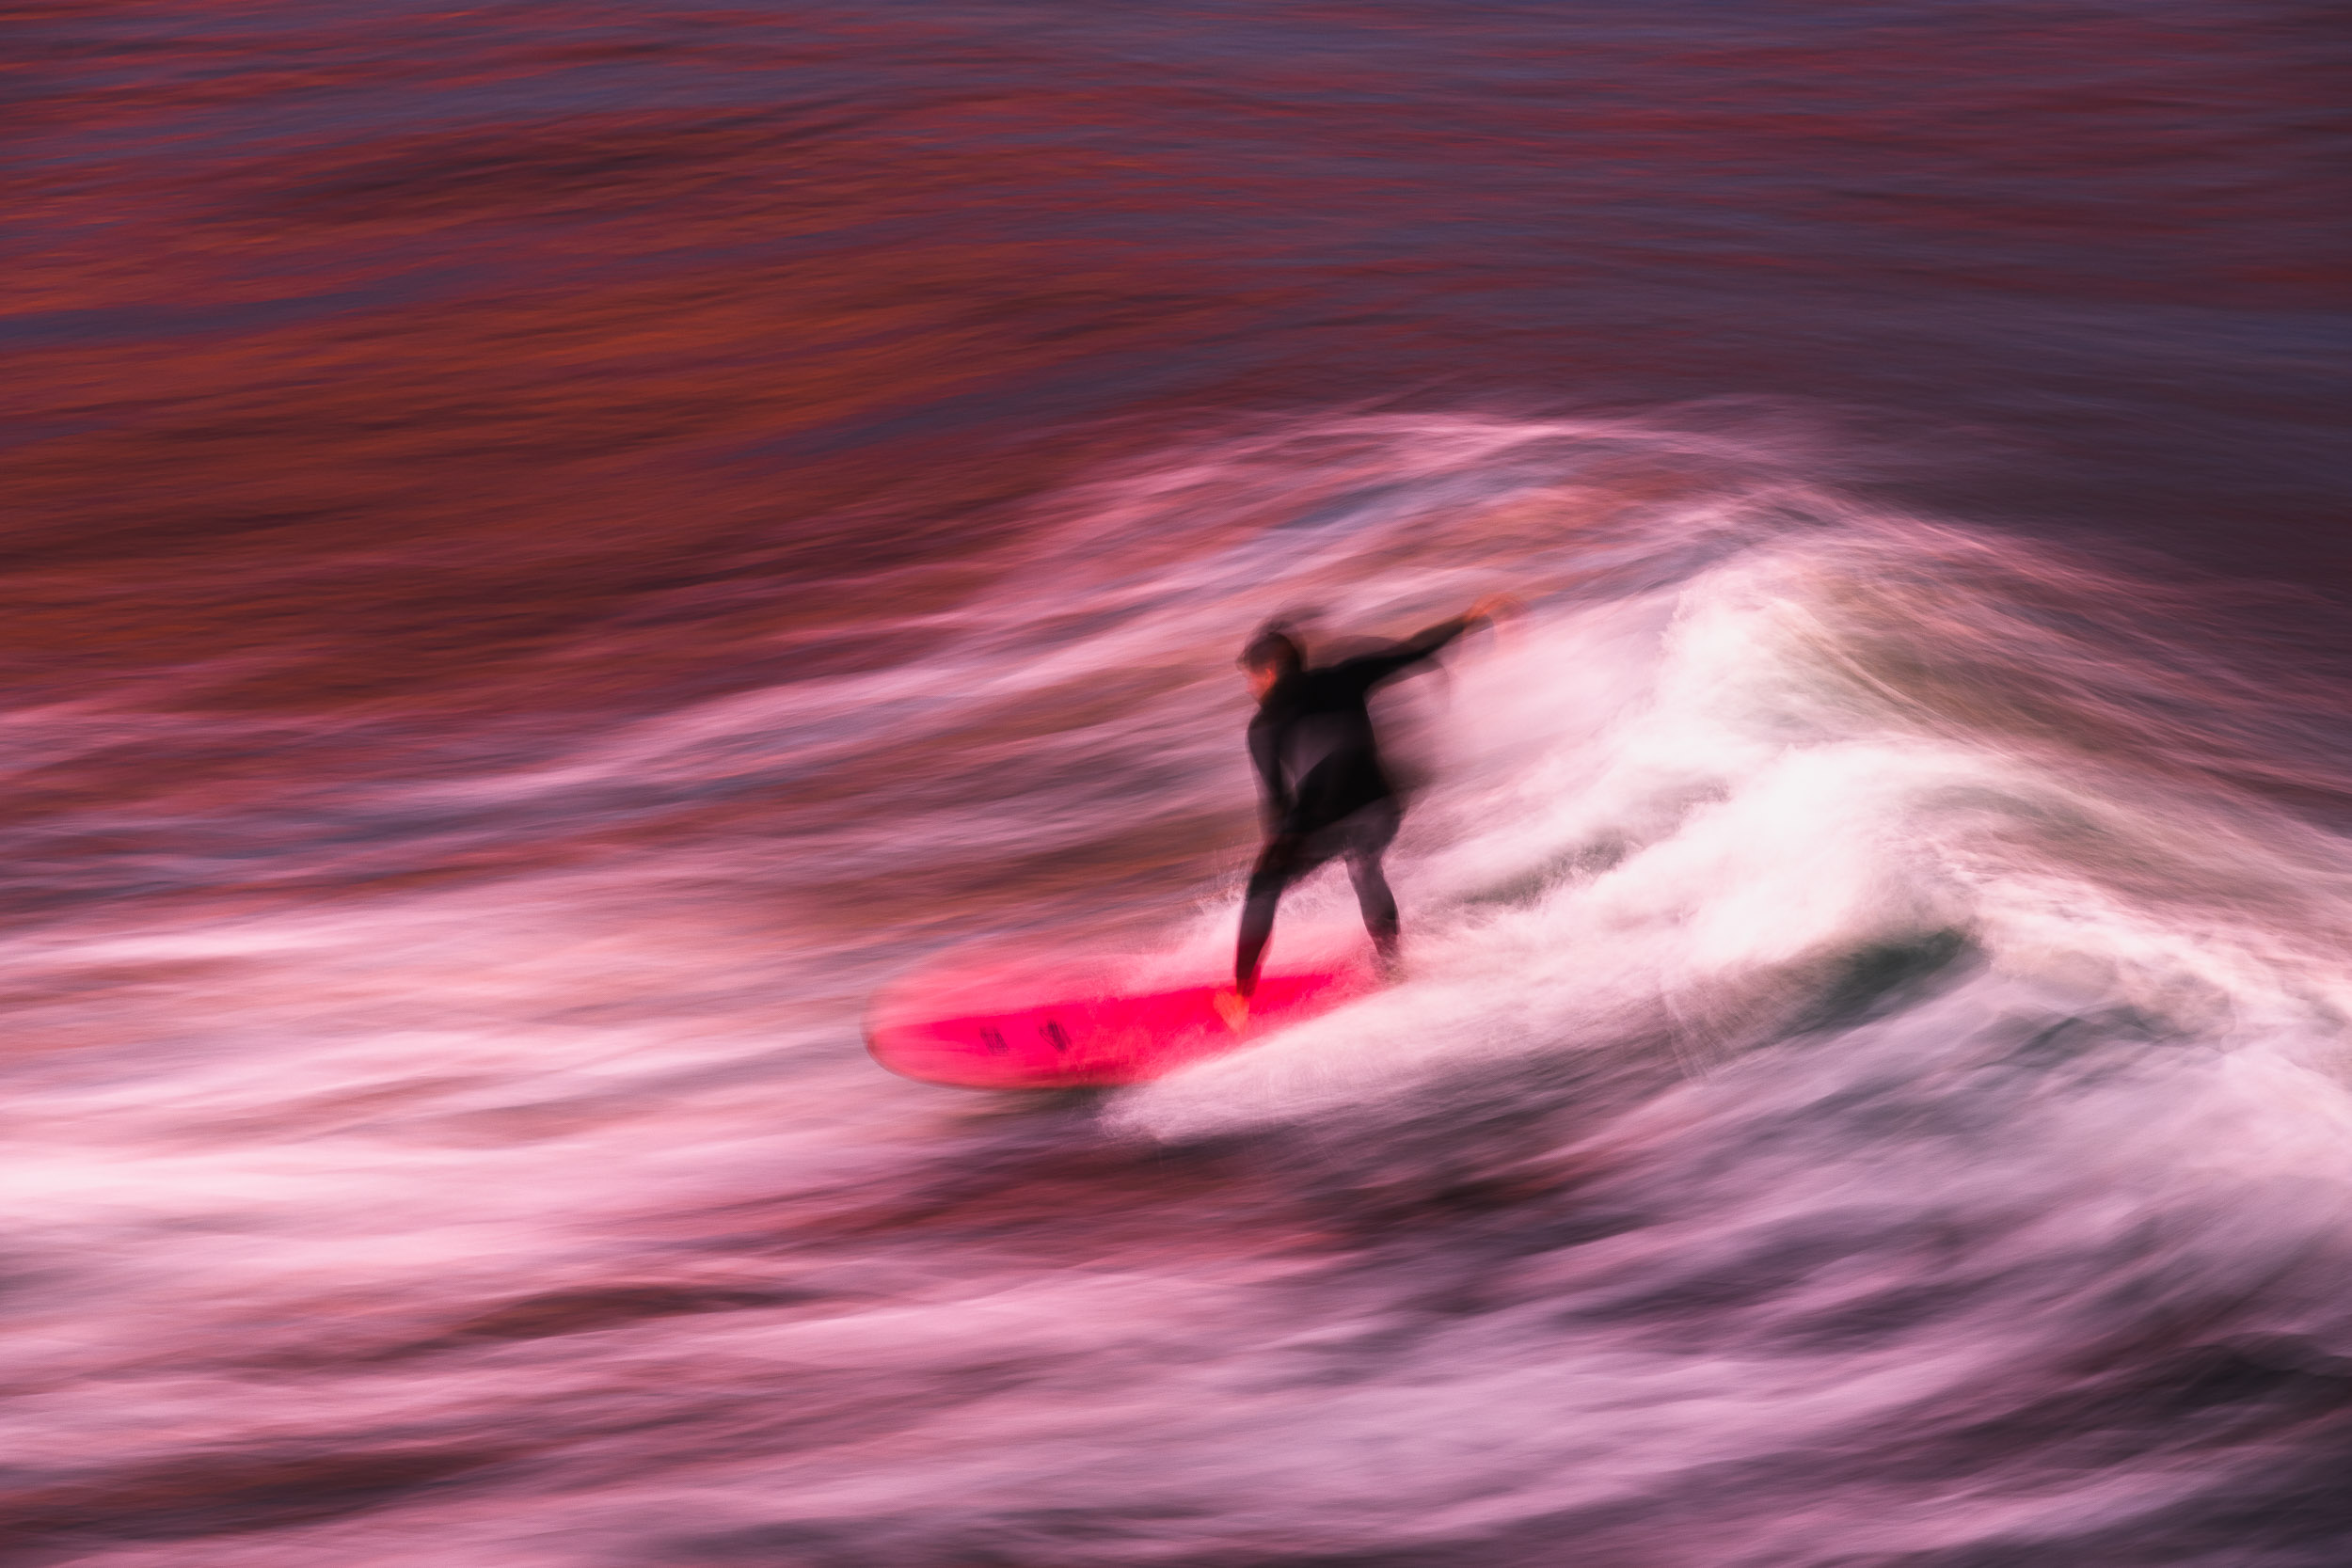 mtufts_surfcity-29.jpg